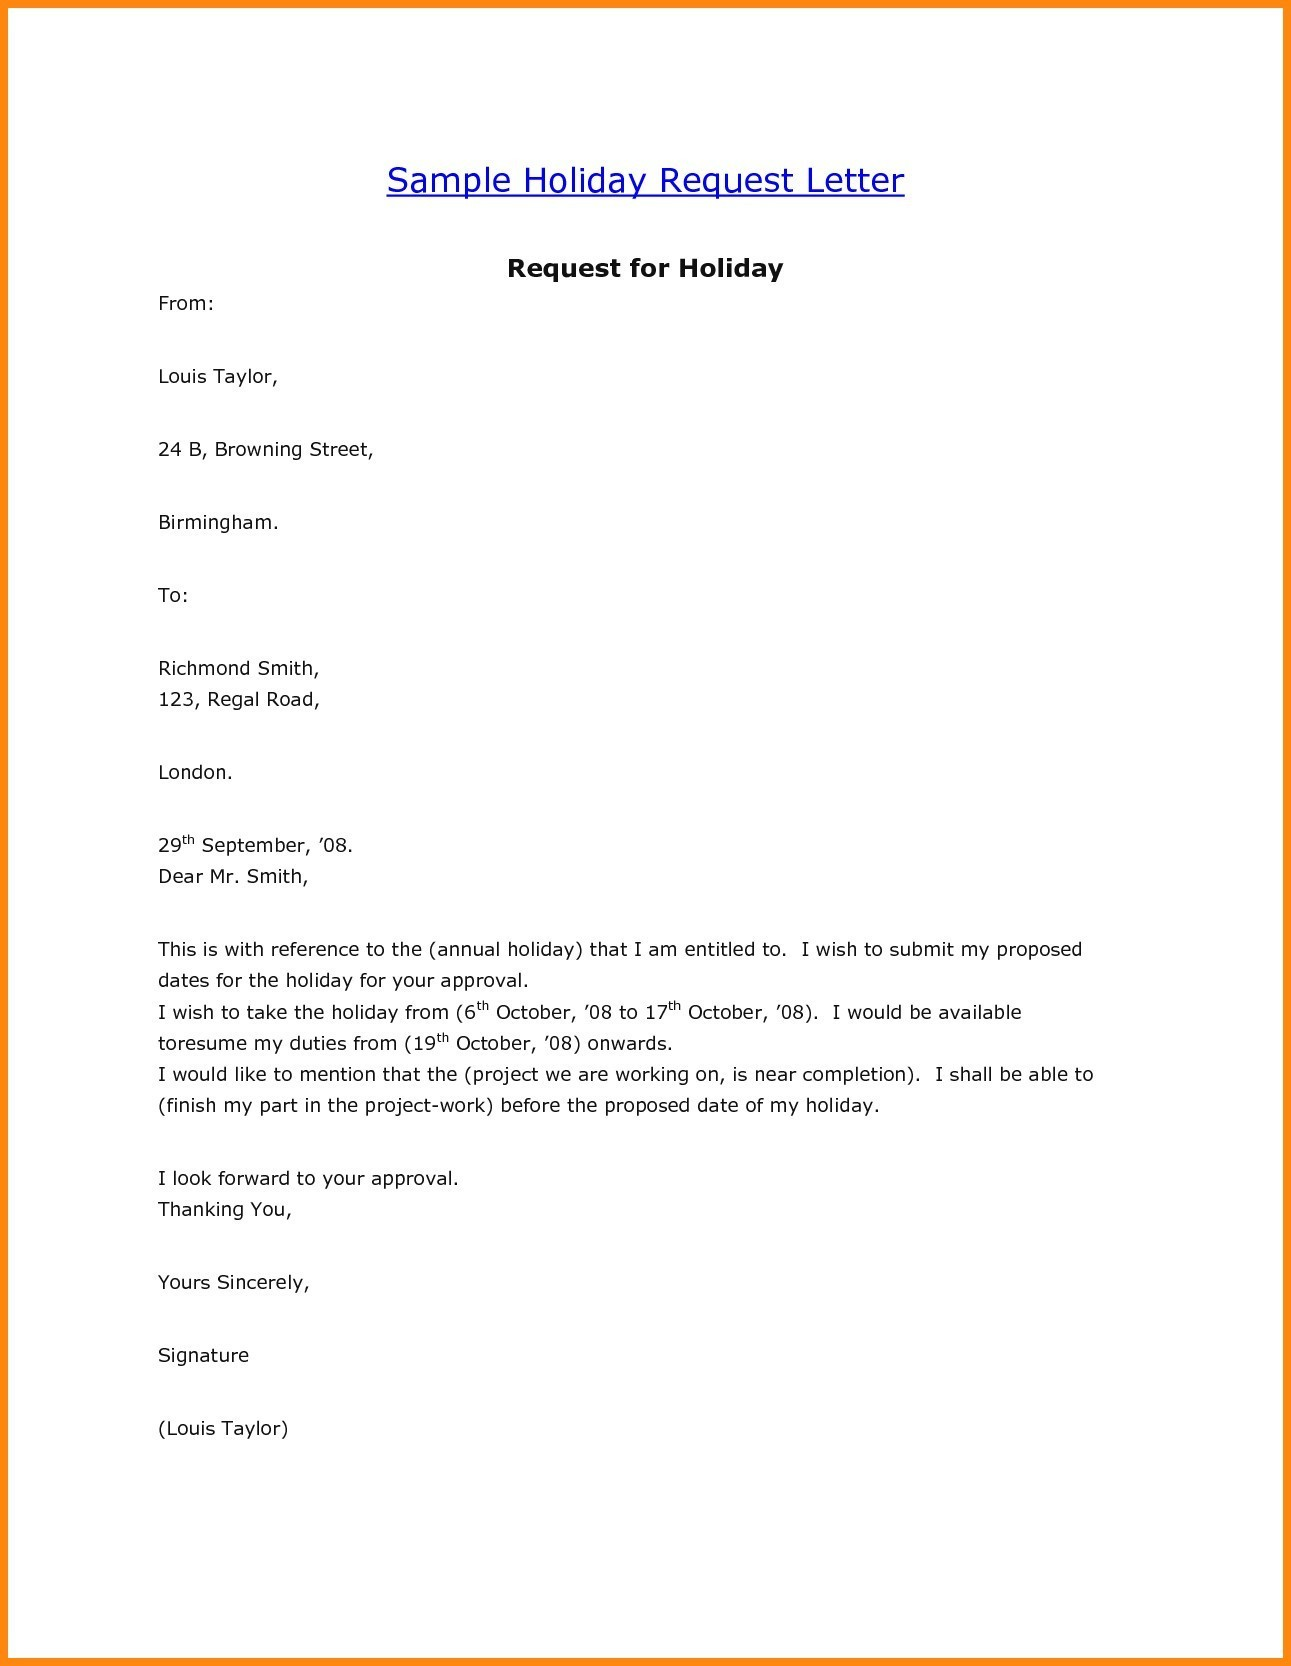 vacation leave letter sample for office vacation leave letter sample 25505 | vacation leave letter sample request letter format for vacation leave fresh beautiful annual leave letter to boss best annual leave approval letter sample vacation fresh latter of of request letter format for vacation leave fresh